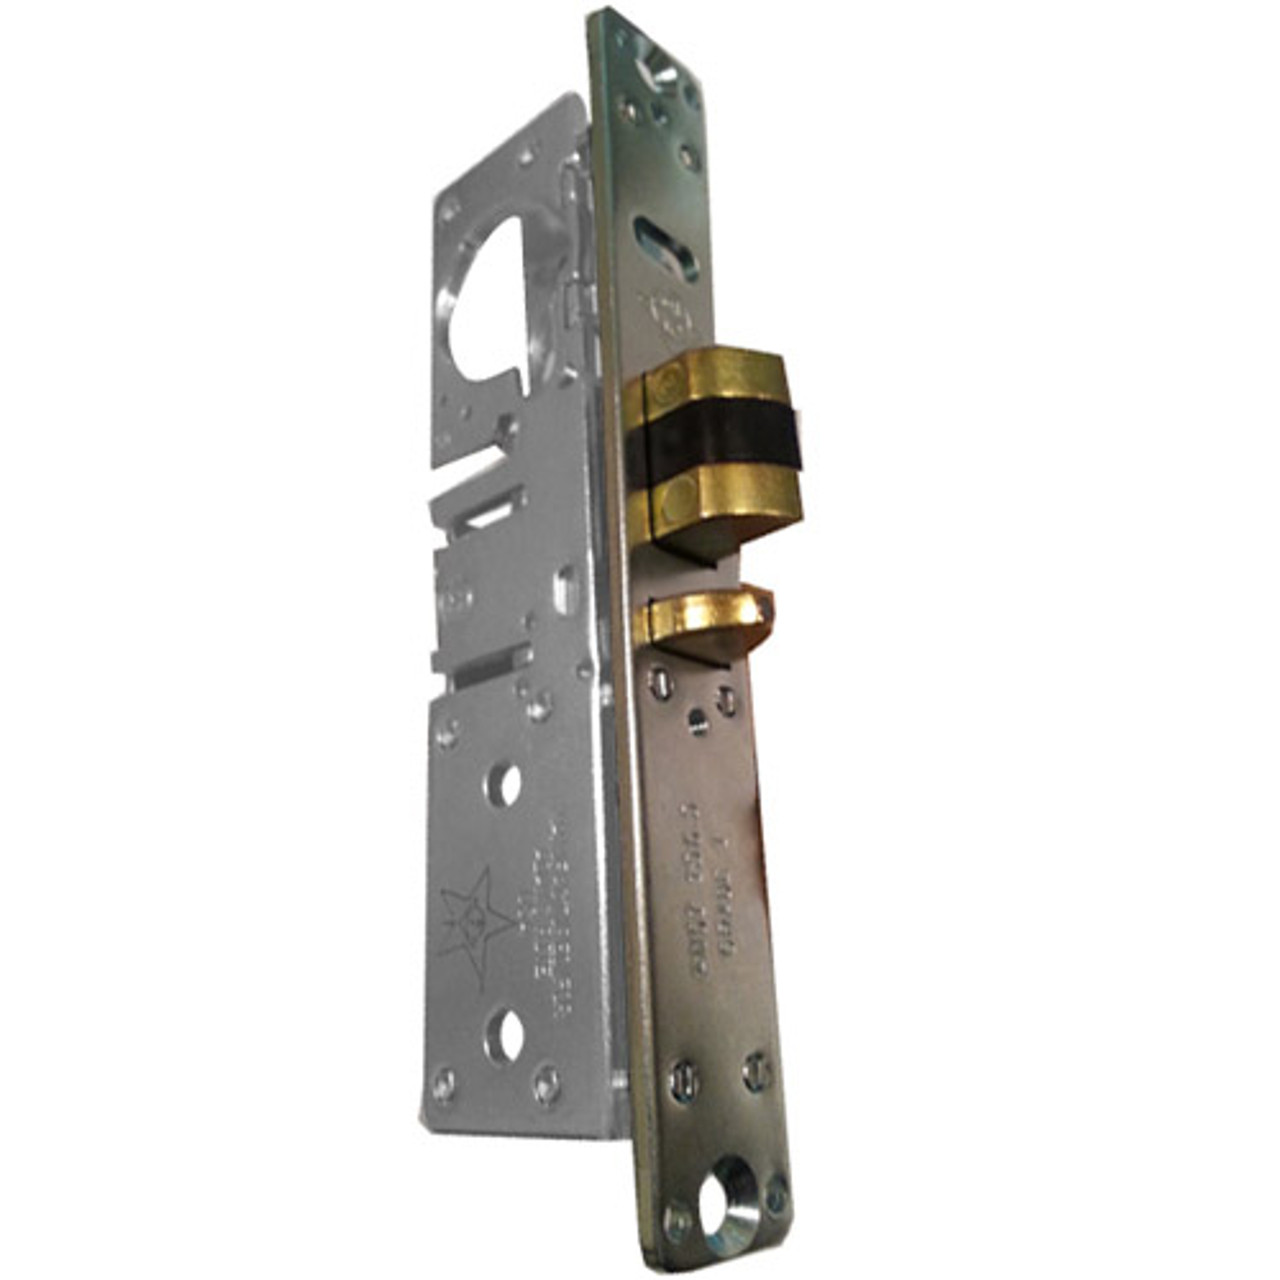 4512-15-102-628 Adams Rite Standard Deadlatch with Bevel Faceplate in Clear Anodized Finish